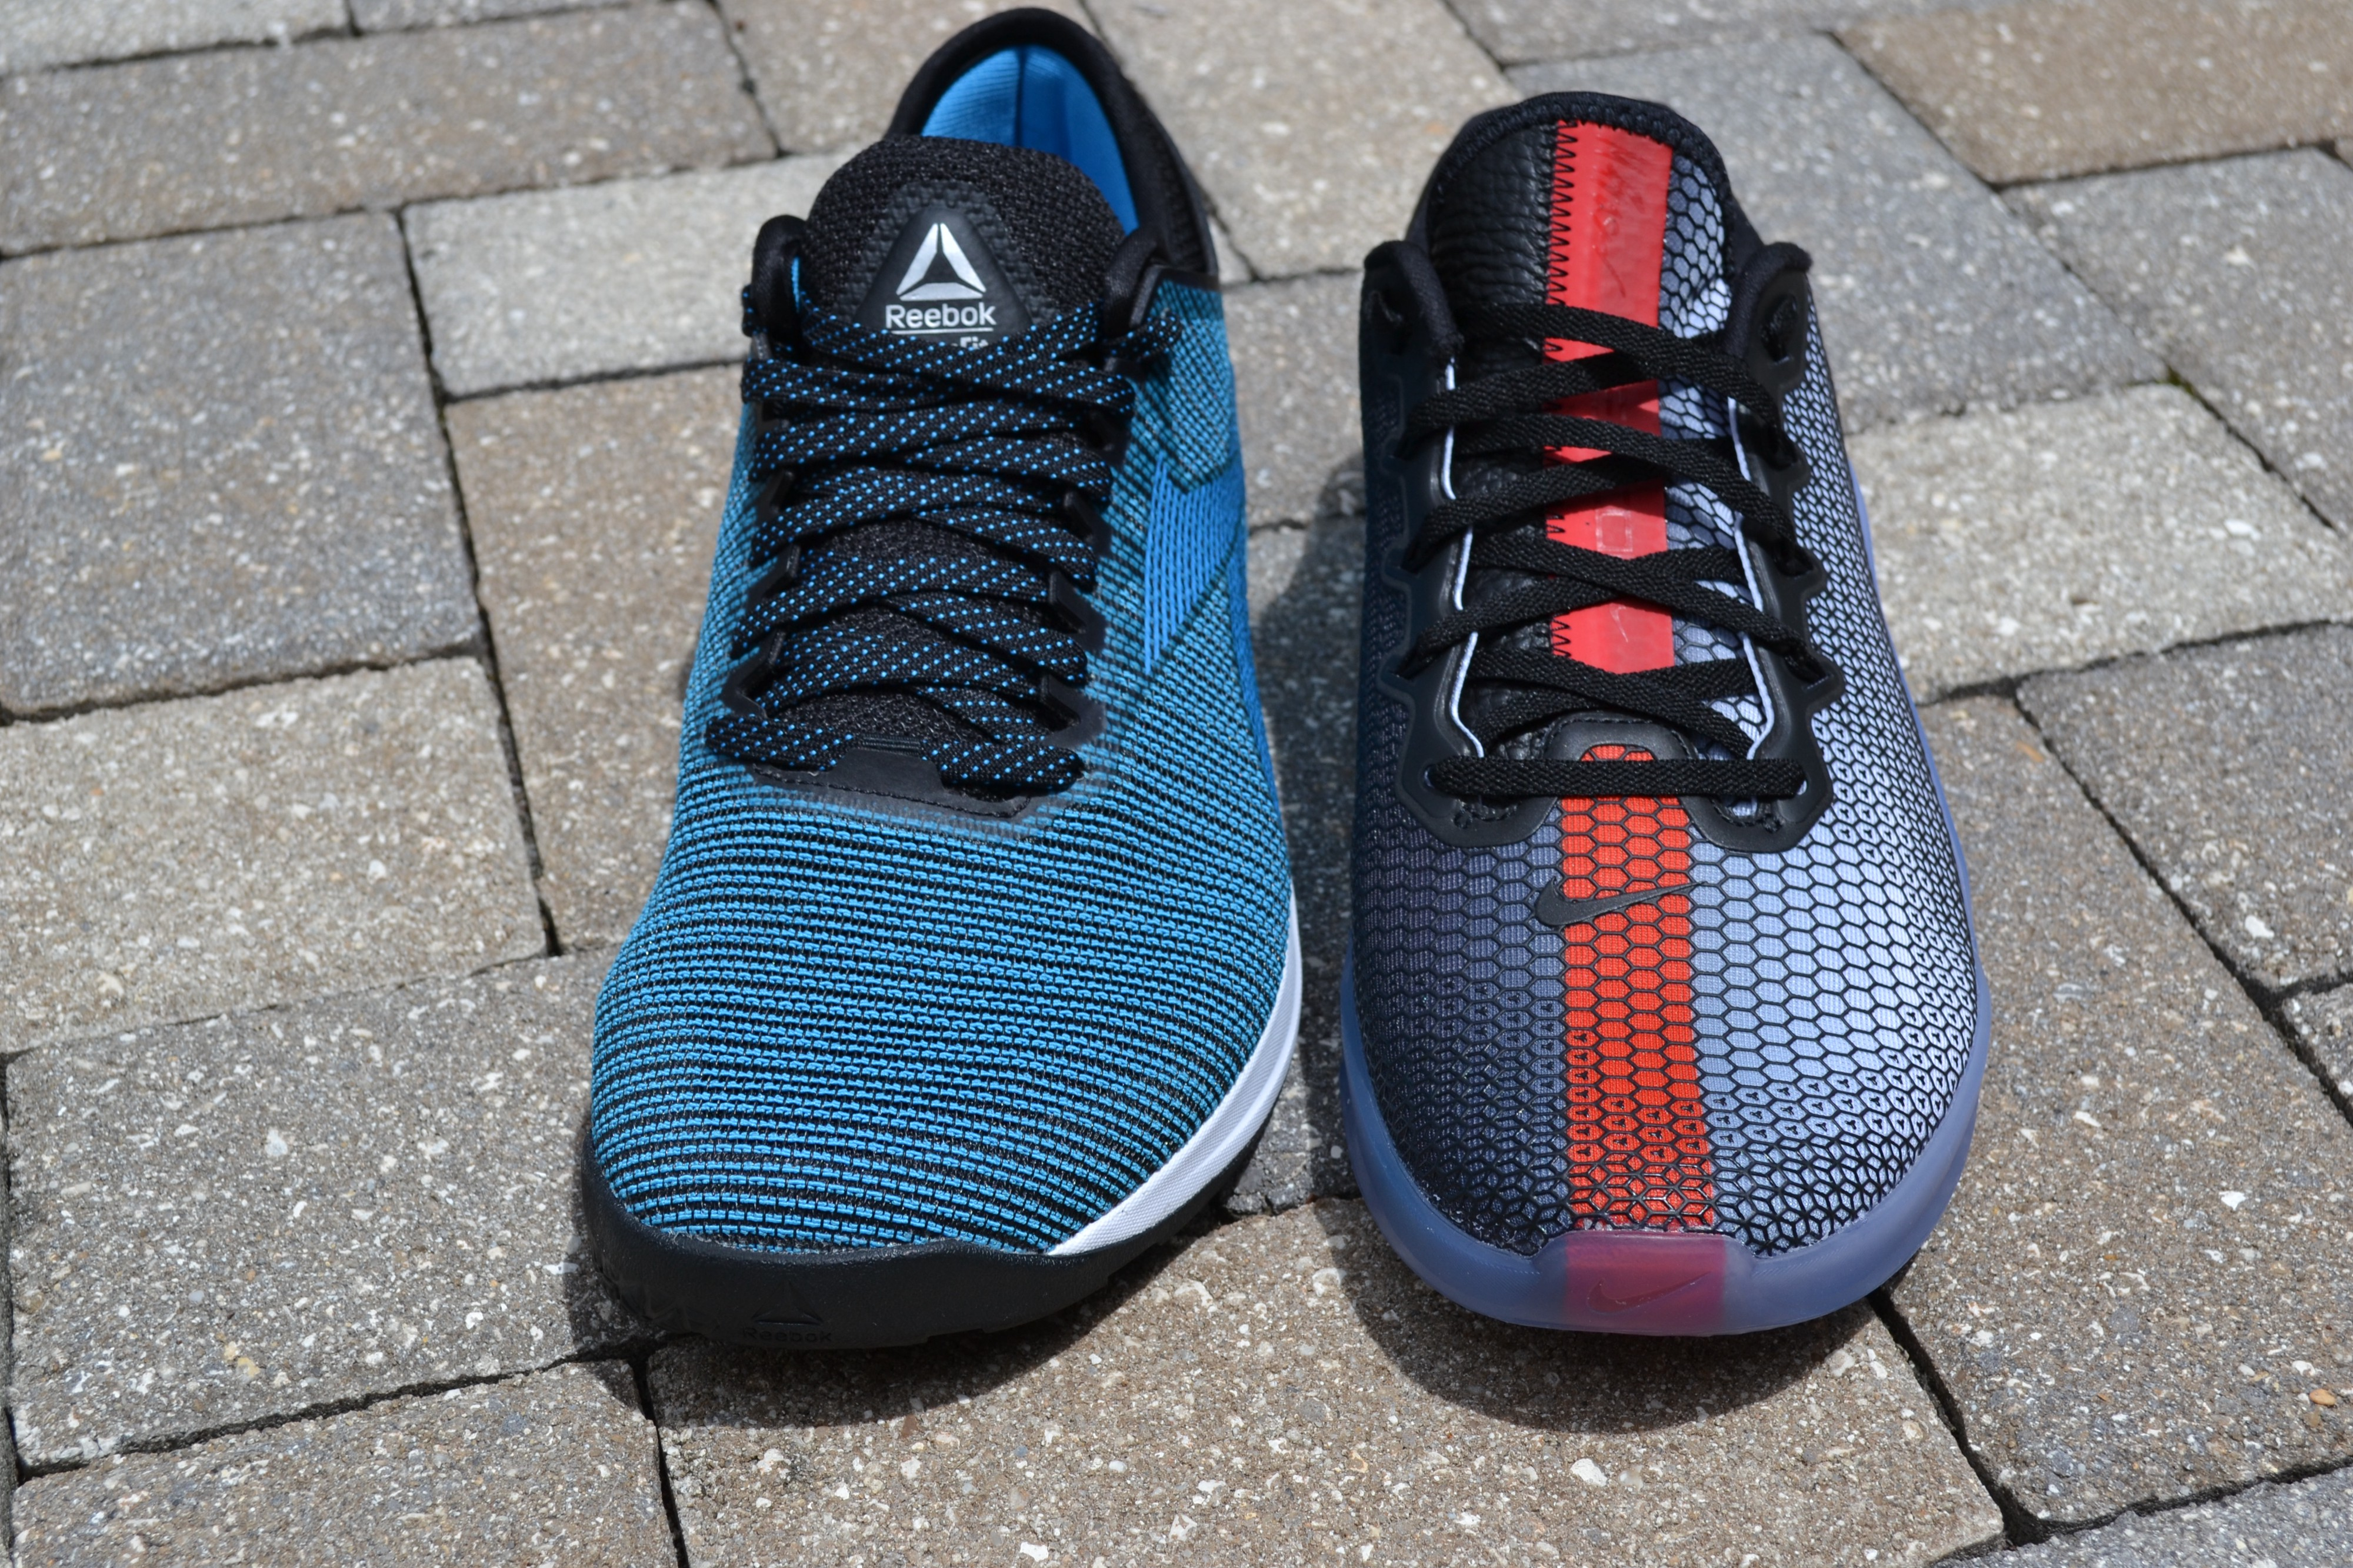 veredicto Perder ángel  Nike Metcon 5 vs Reebok Nano 9. Just in time for the CrossFit Games… | by  Fit At Midlife | Medium